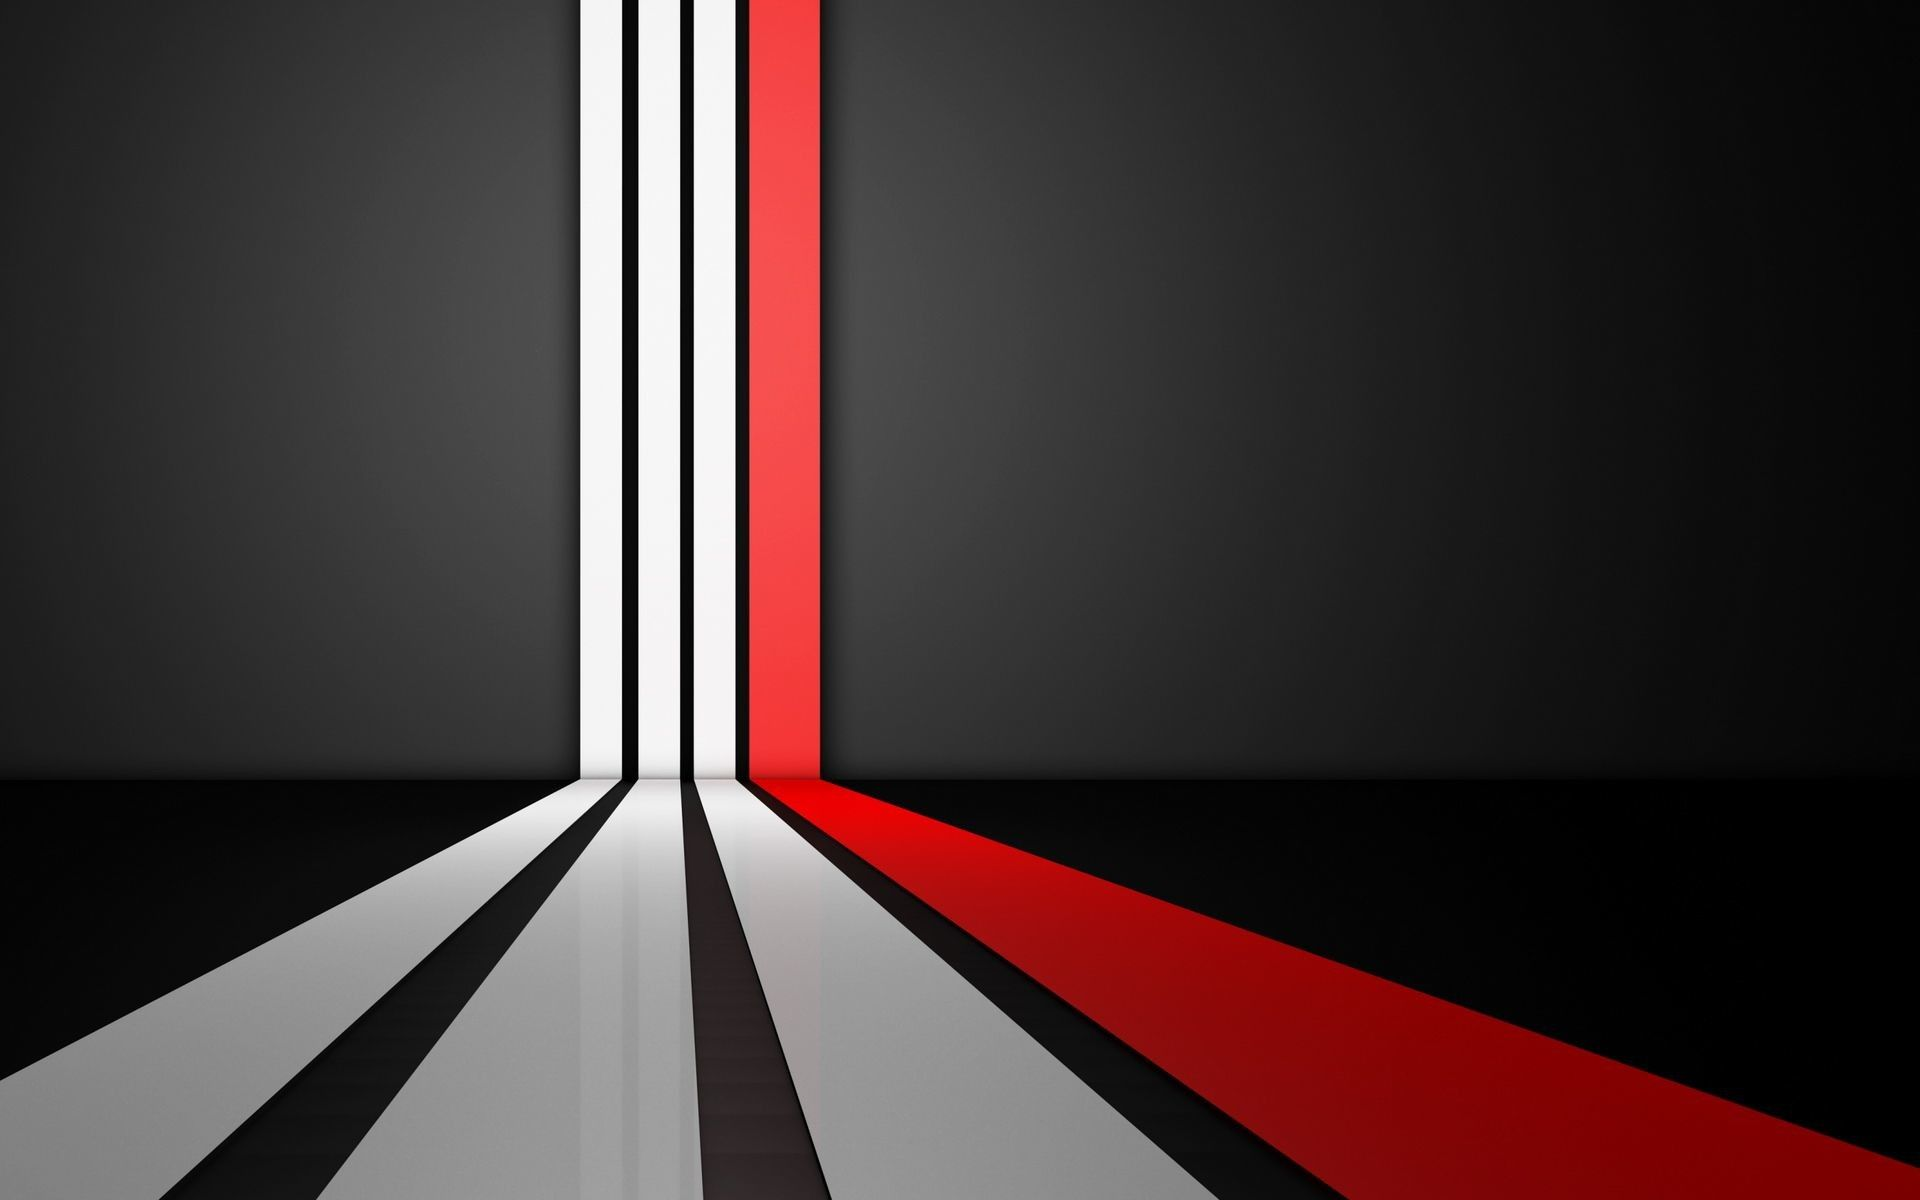 1920x1200 Black And White And Red Abstract Wallpapers Red Wallpaper Abstract Wallpaper Lines Wallpaper